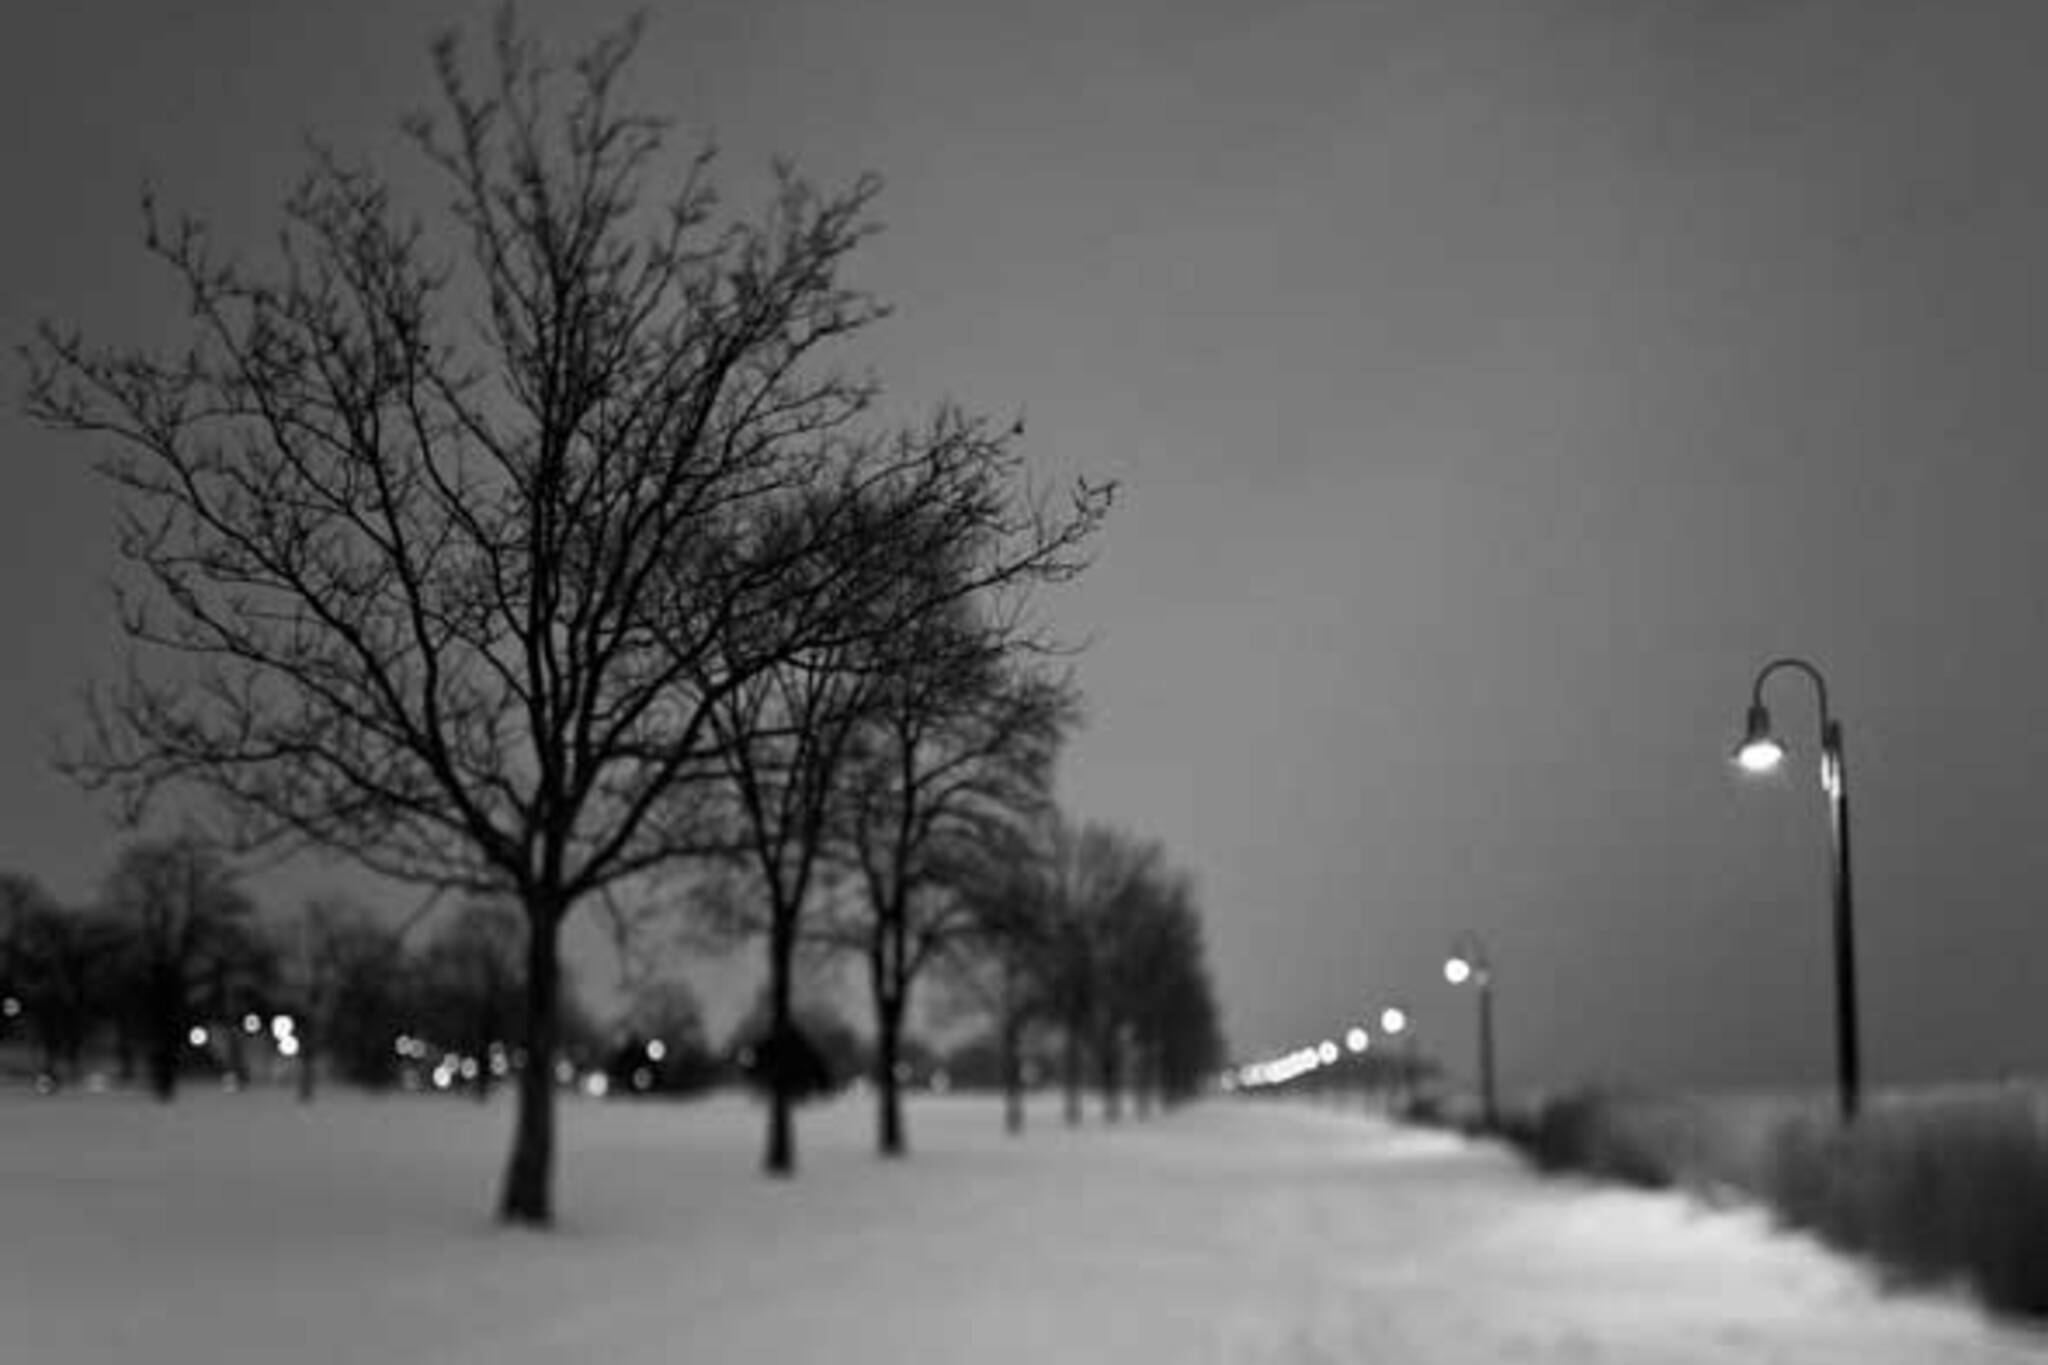 Lakeshore Path at Dusk by ste&we